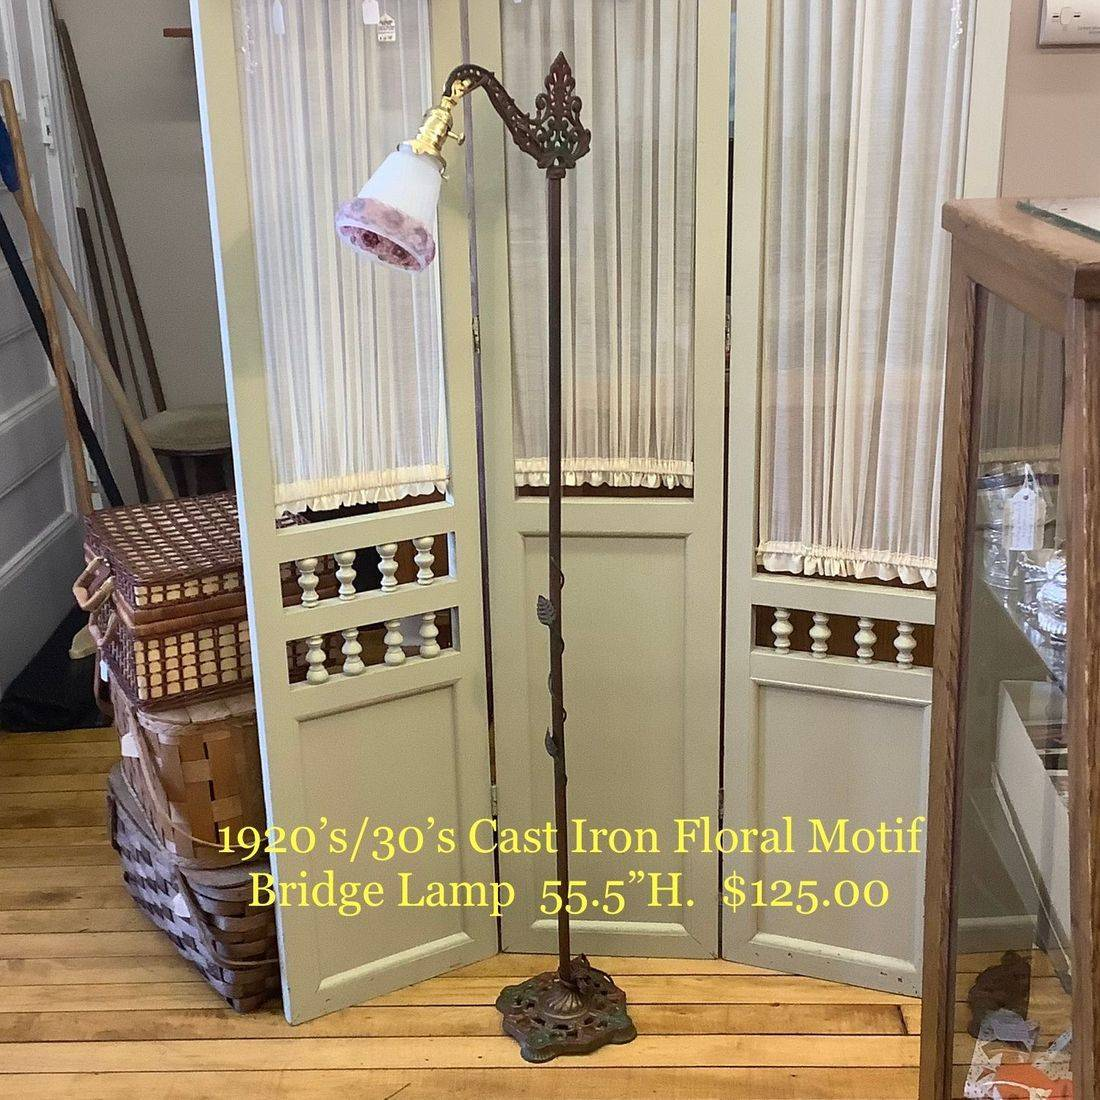 "1920's/30's Cast Iron Floral Motif Bridge Lamp  55.5""H.  $125.00"